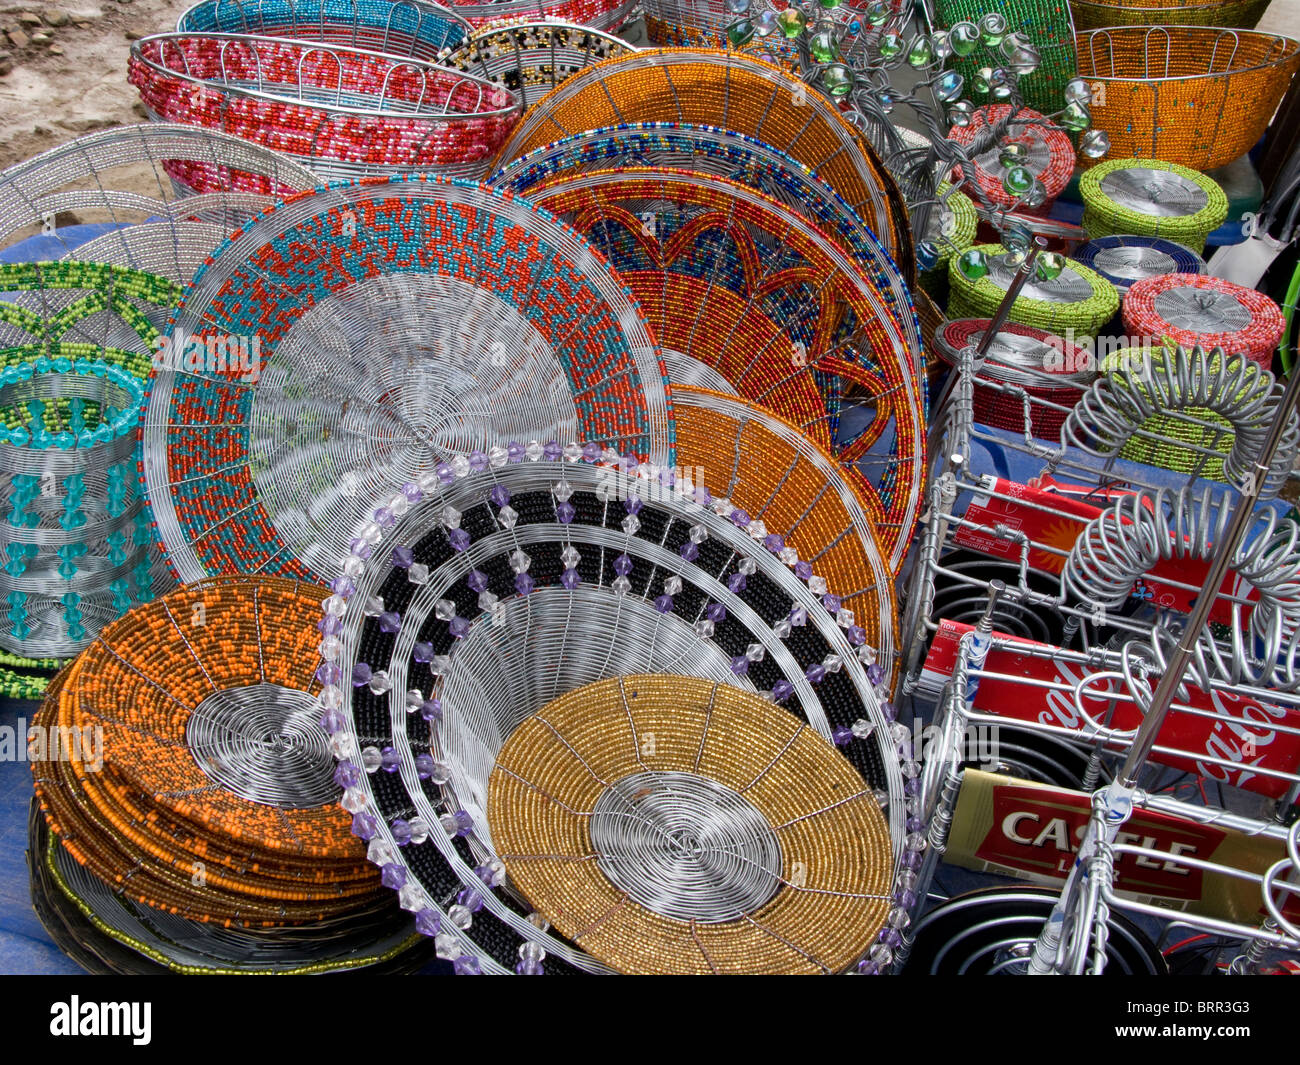 Bead and wire craft for sale at a flea market - Stock Image